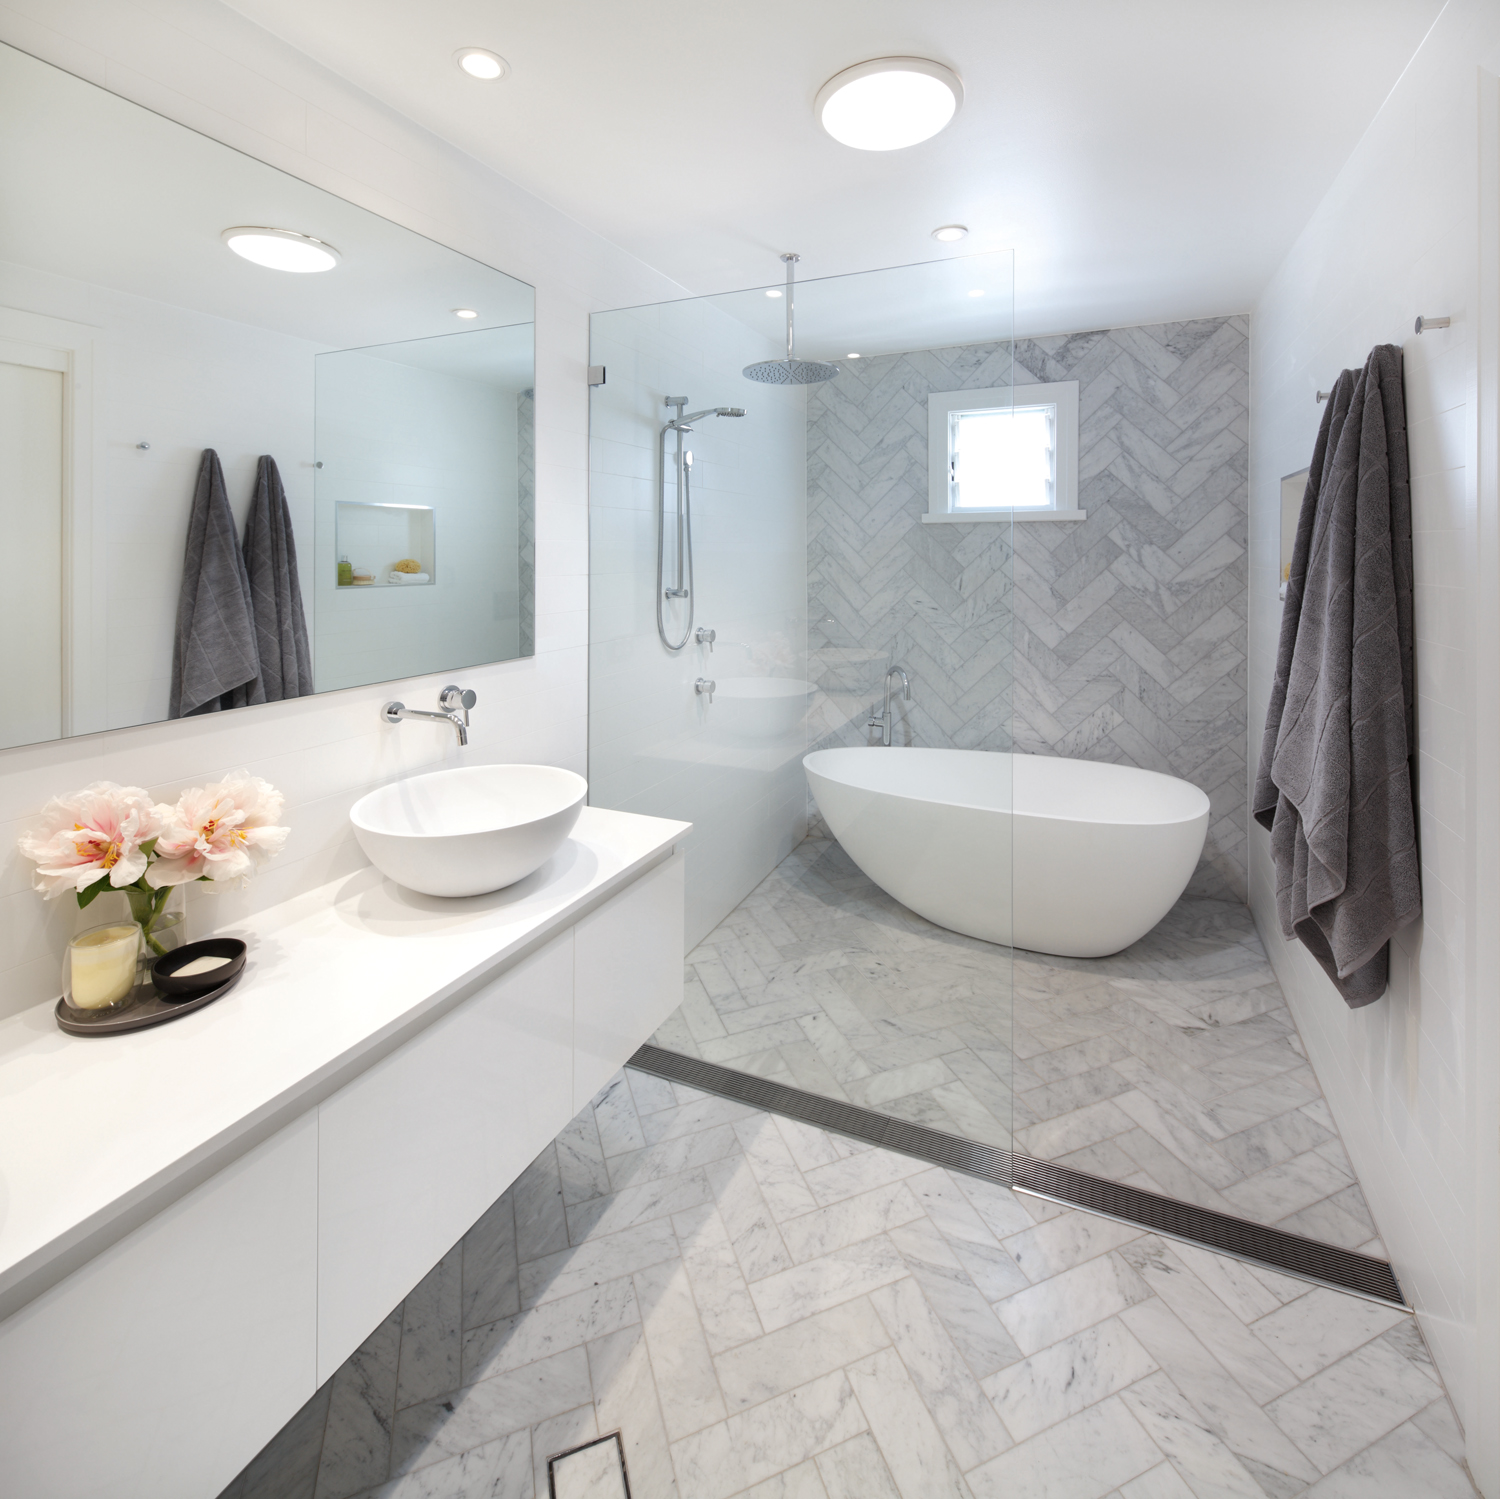 Timeless luxury: bathroom design - Completehome